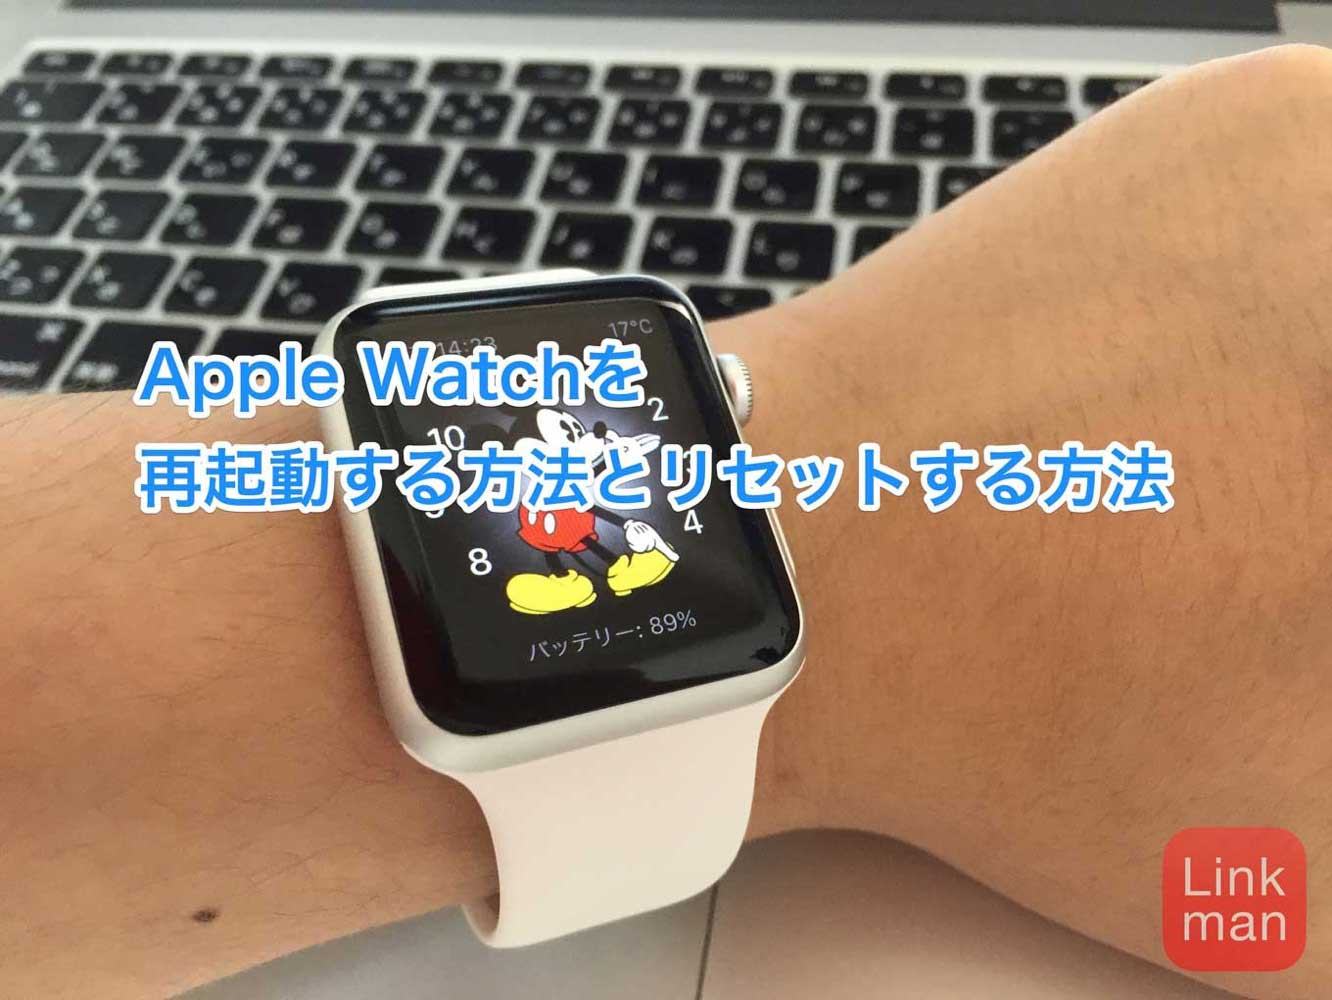 Applewatch saikidou 01